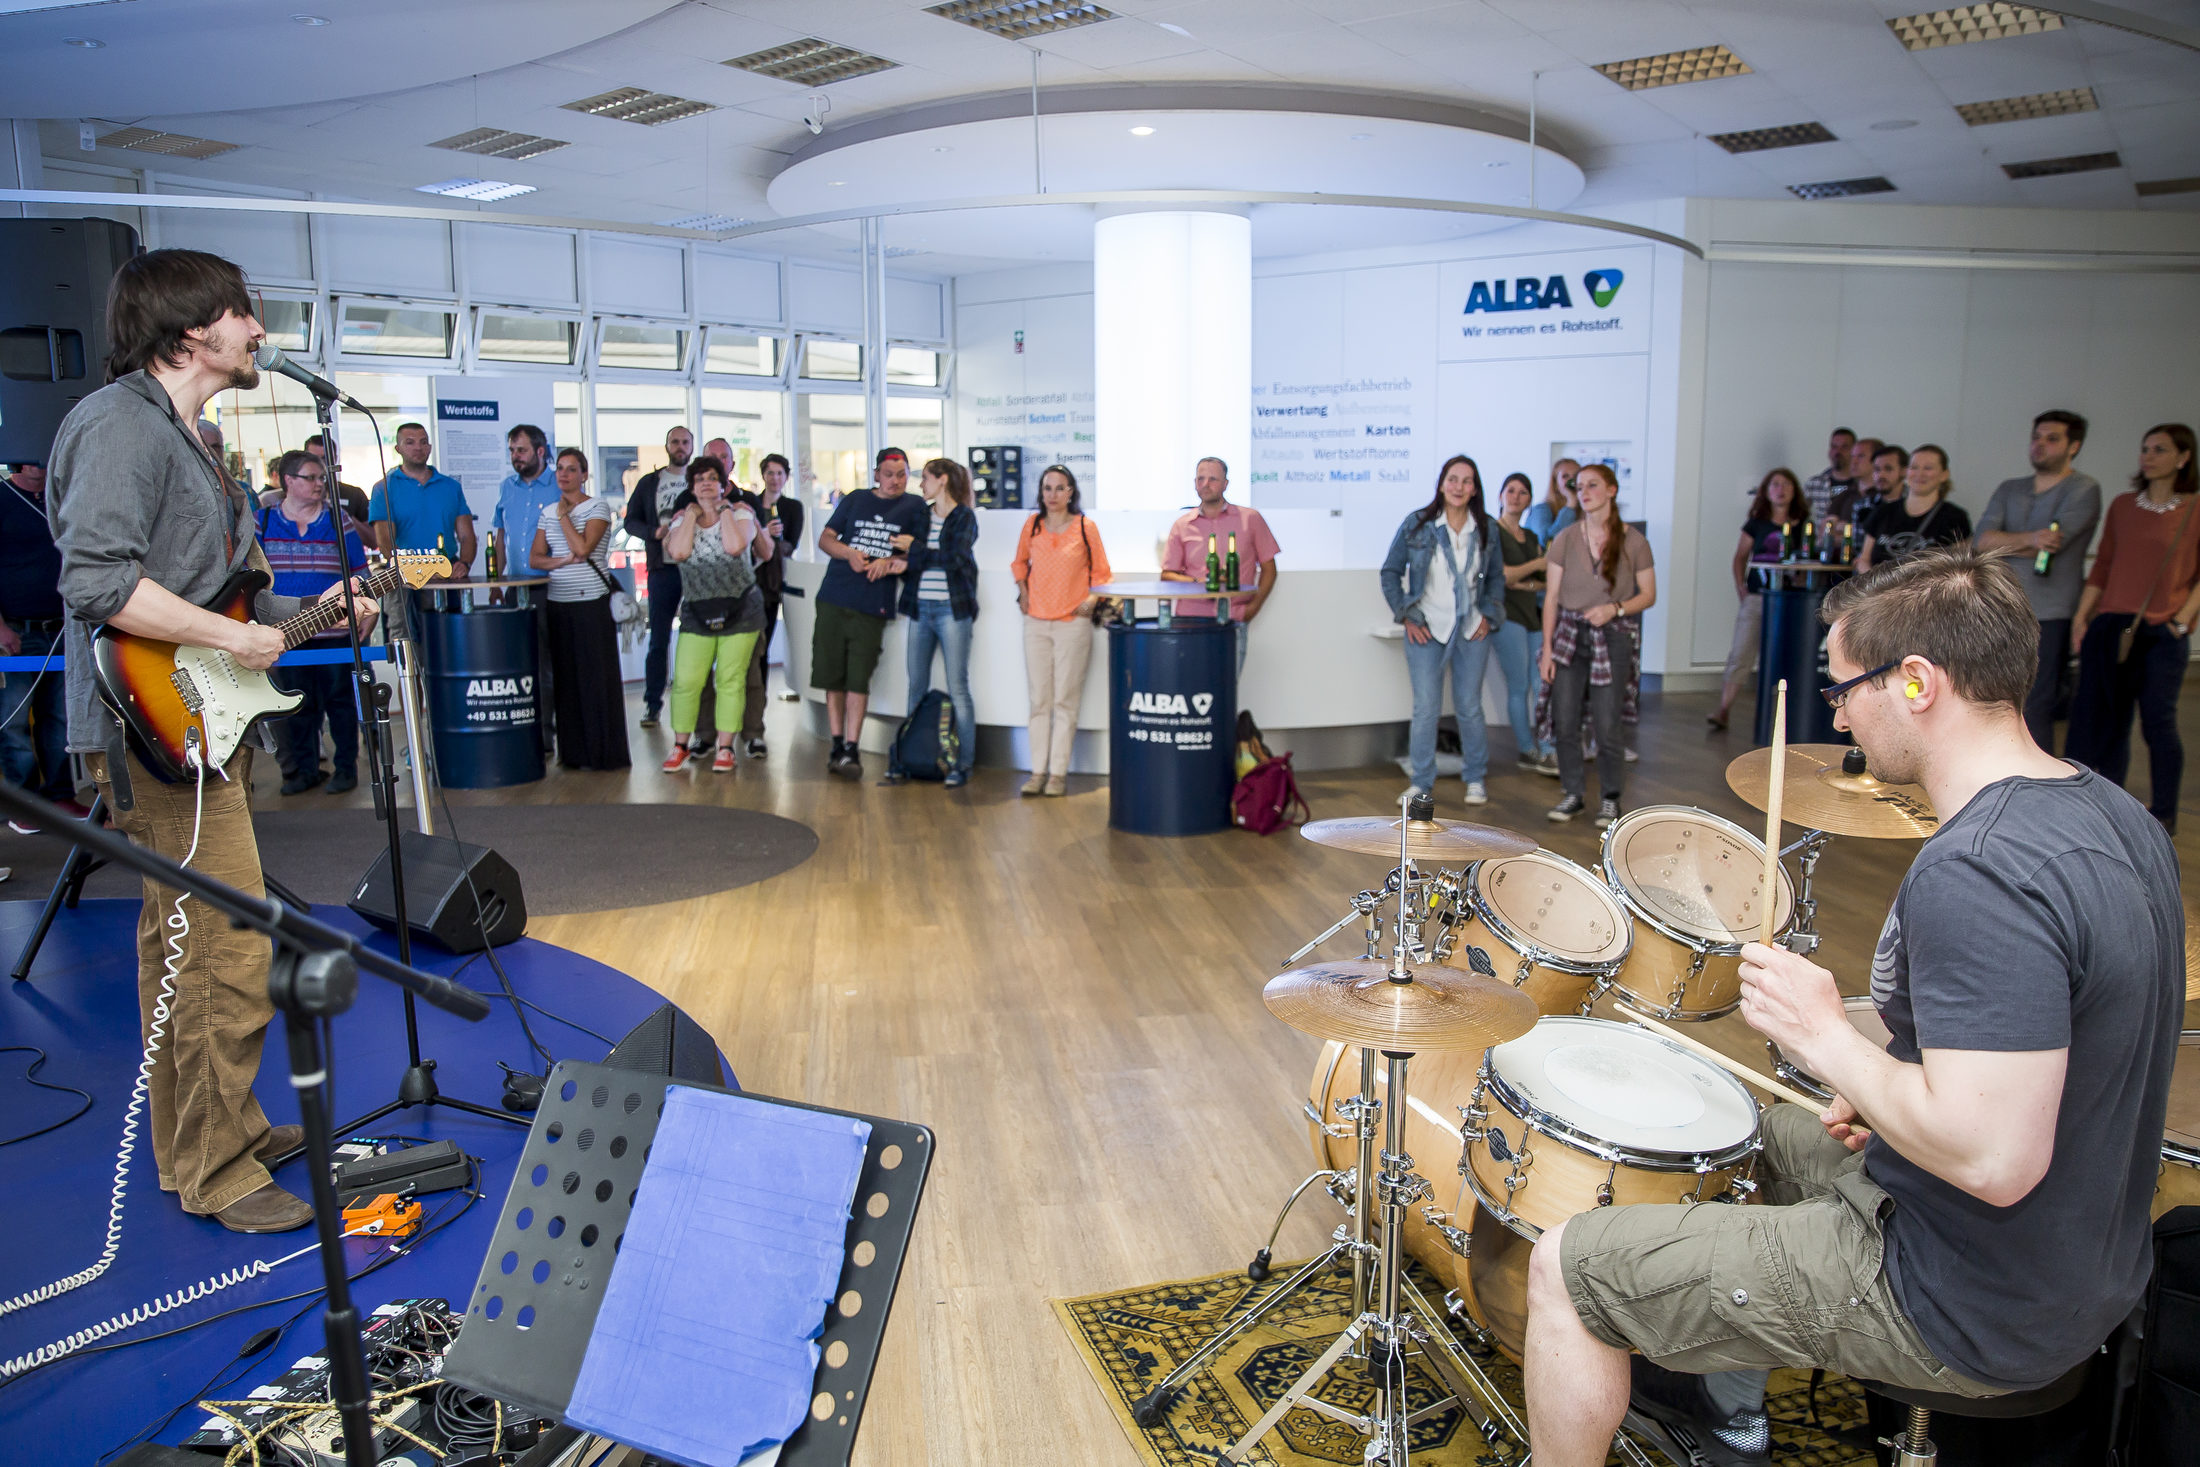 Rock im ALBA Kundenzentrum